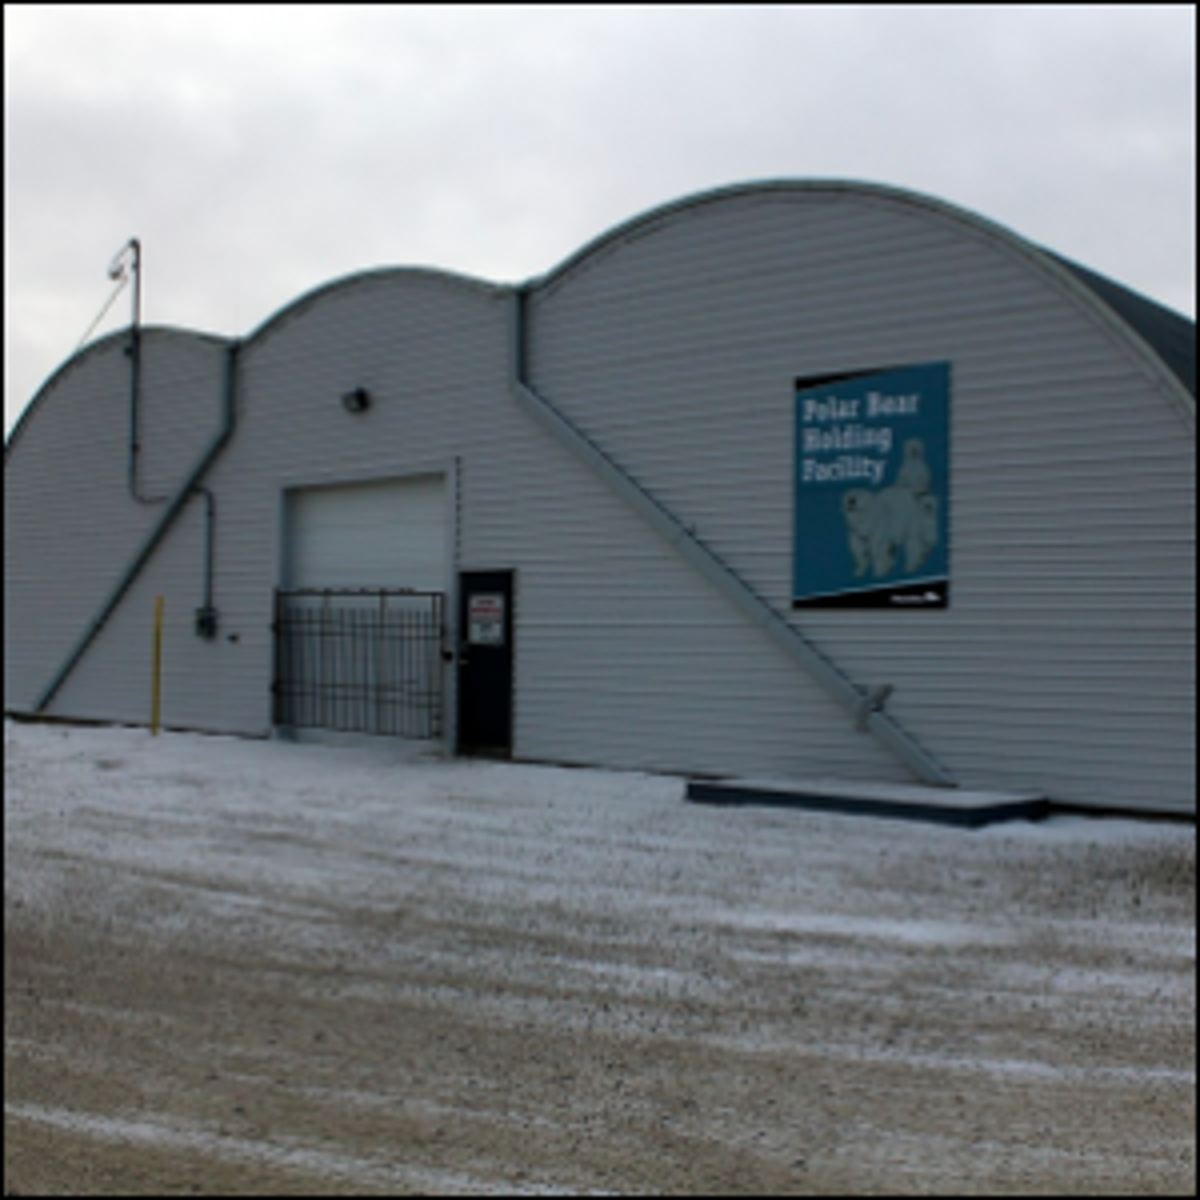 The town of Churchill's polar bear jail in 2011.